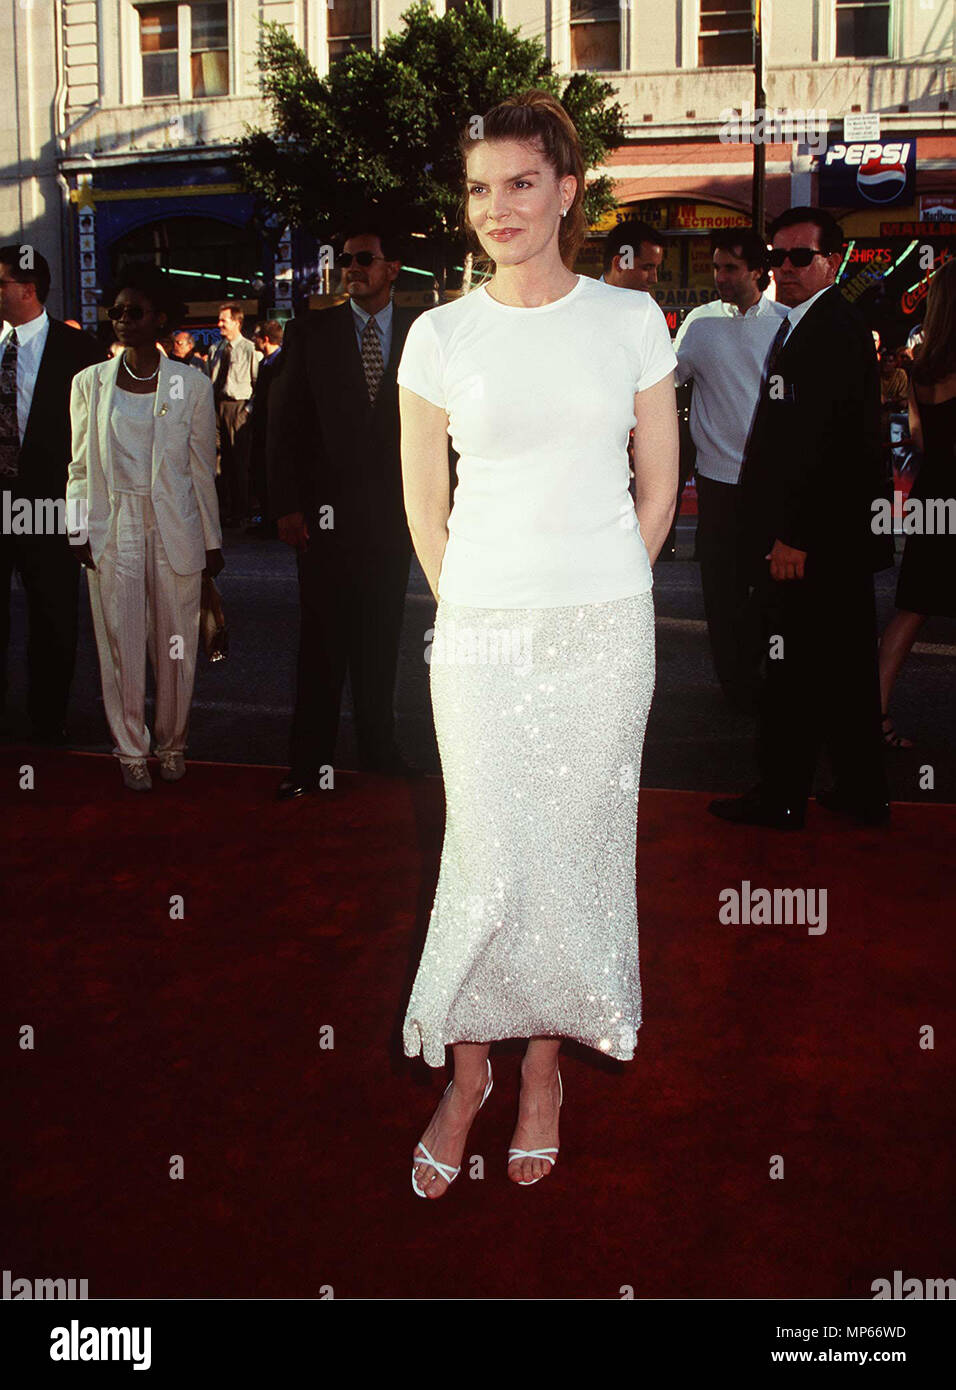 Film X Emy Russo f russo stock photos & f russo stock images - alamy